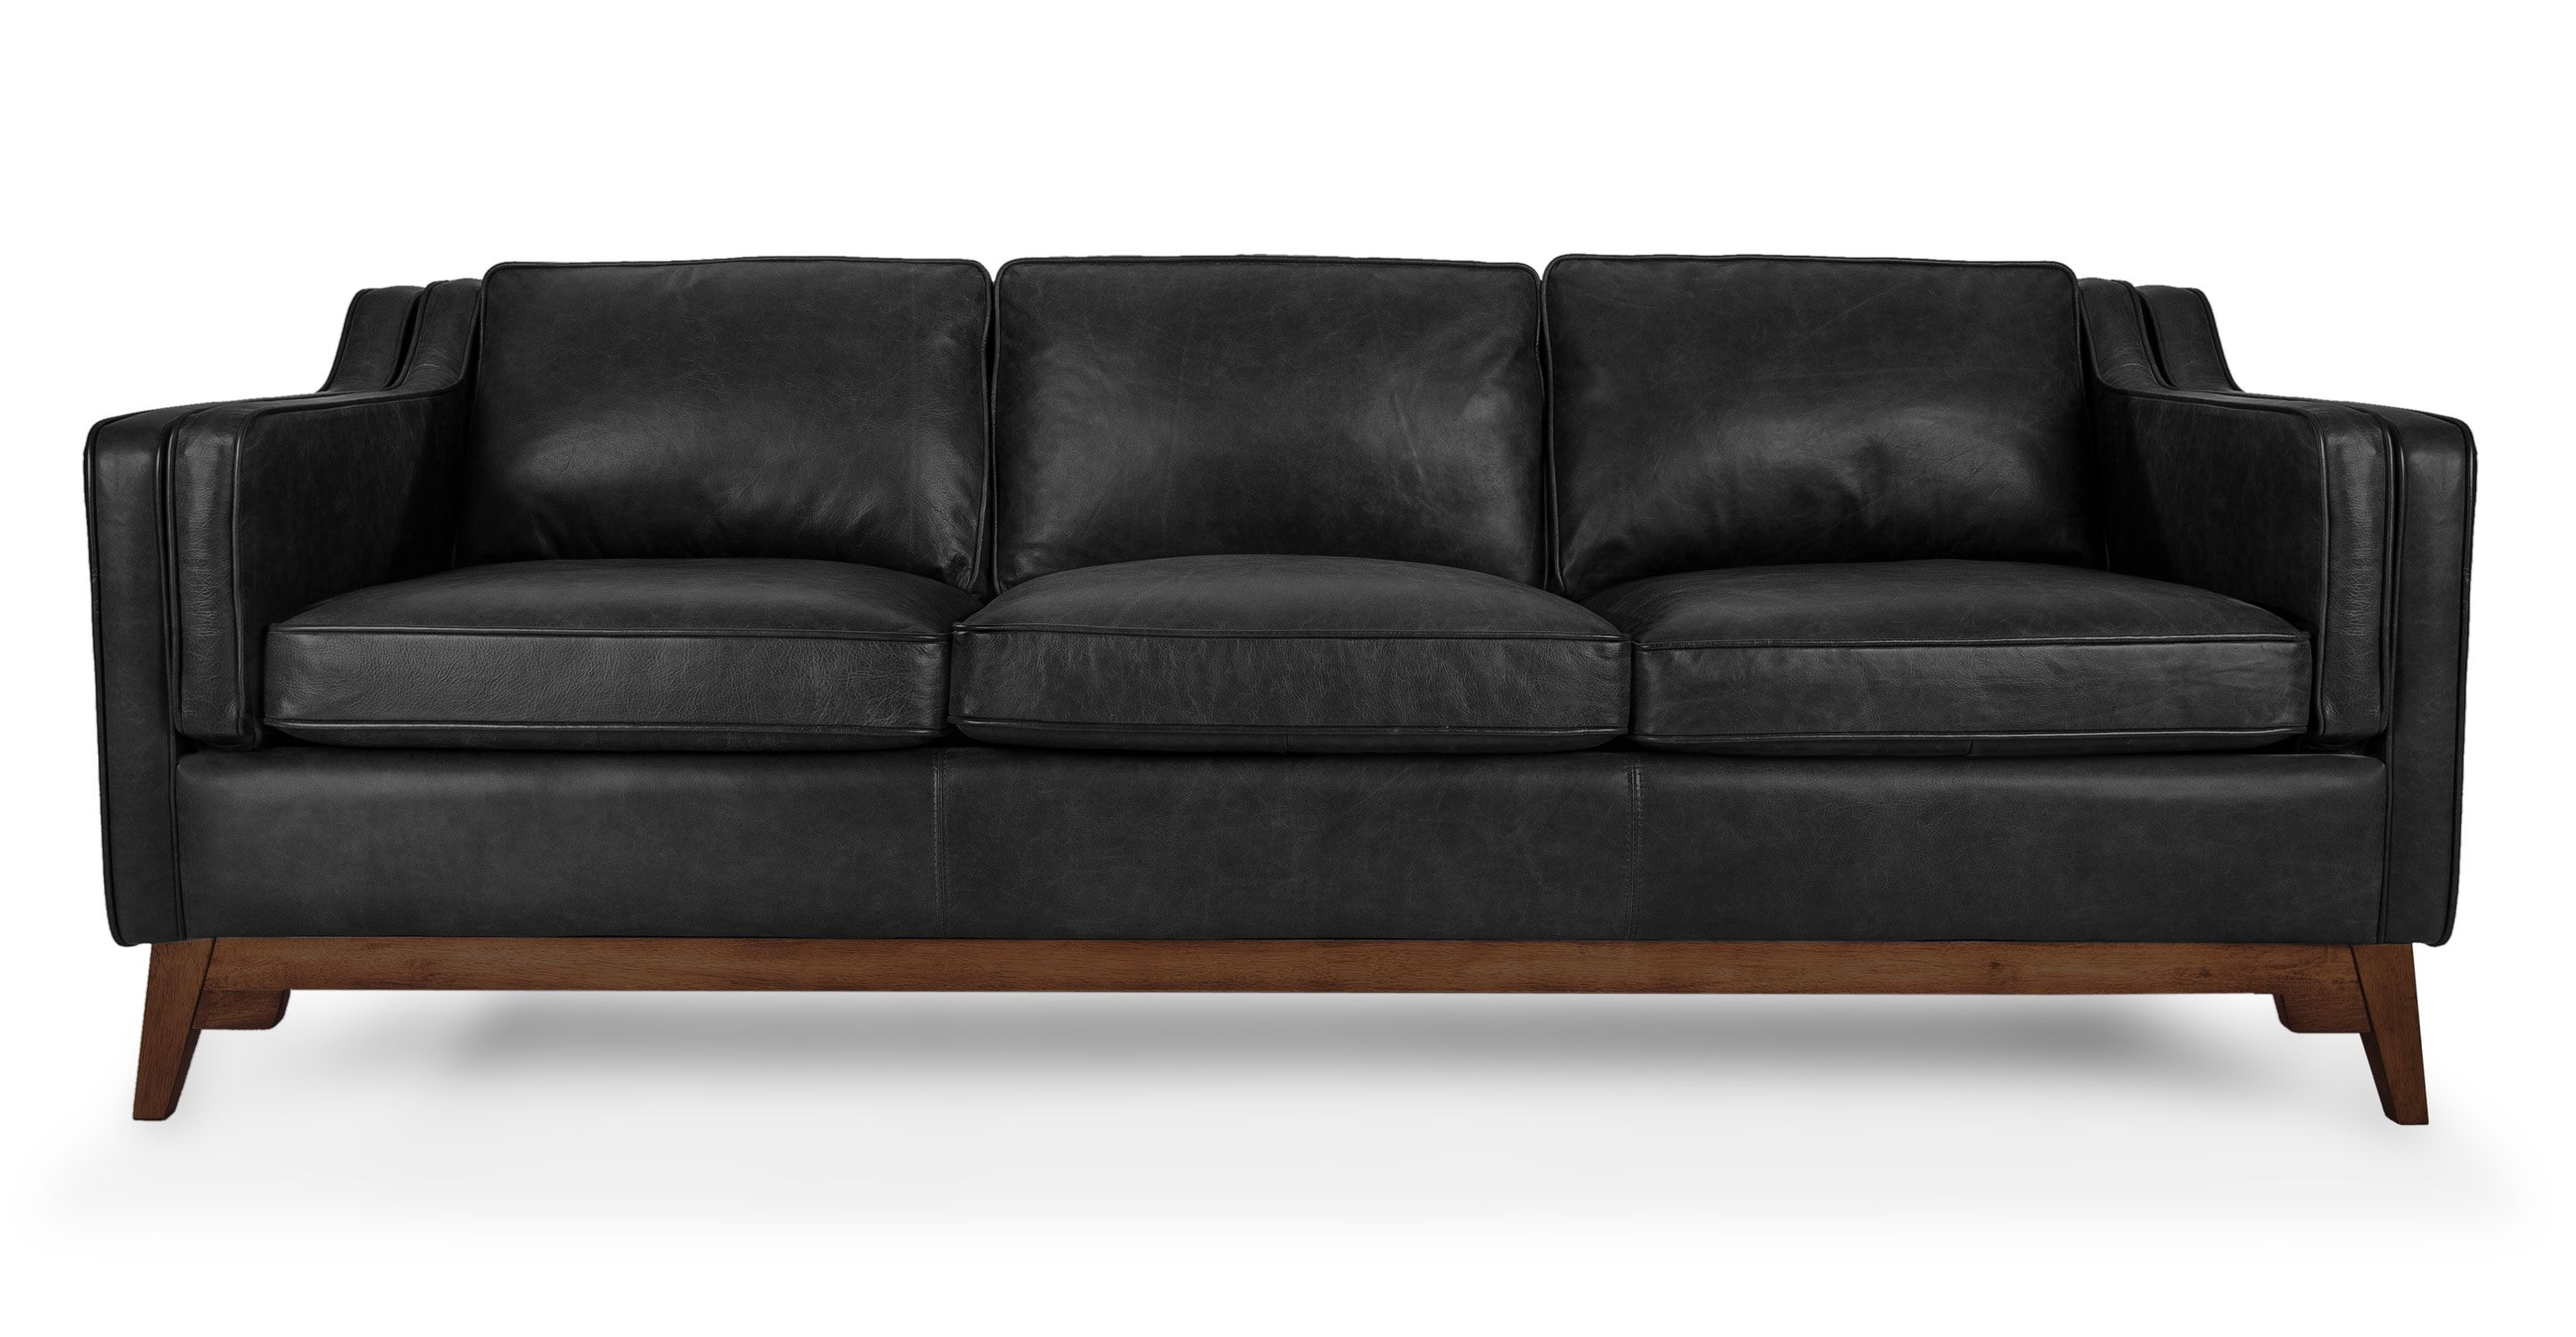 Worthington Oxford Black Sofa Brown Sofa Leather Sofa Furniture